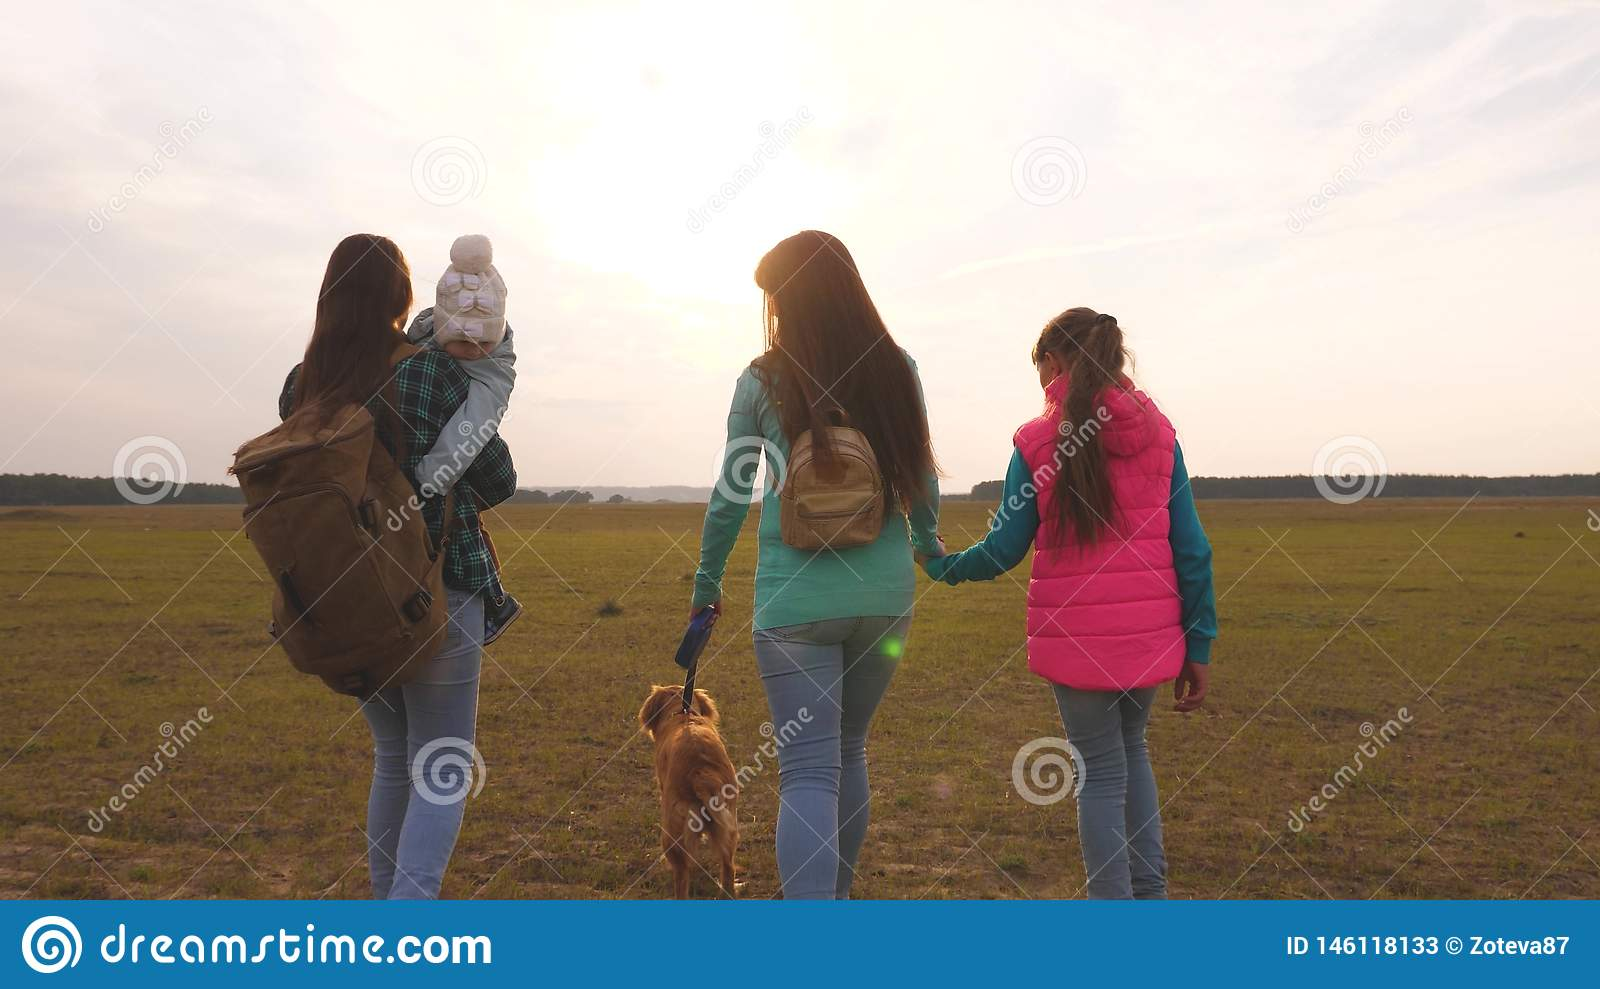 Family travels with the dog on the plain. teamwork of a close-knit family. mother, little child and daughters and pets